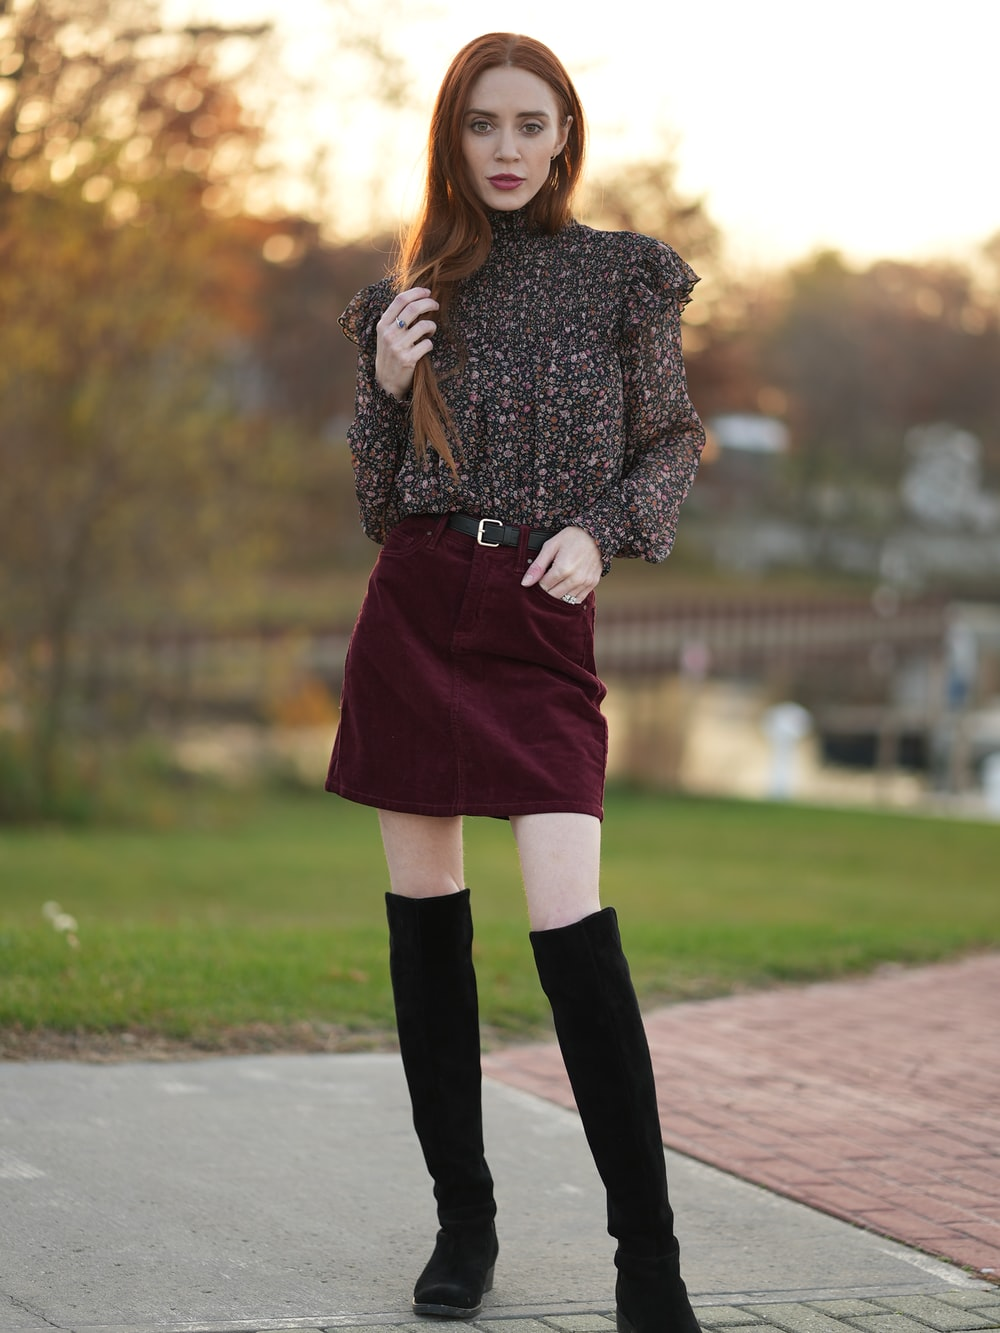 woman in black and white long sleeve shirt and red skirt standing on road during daytime